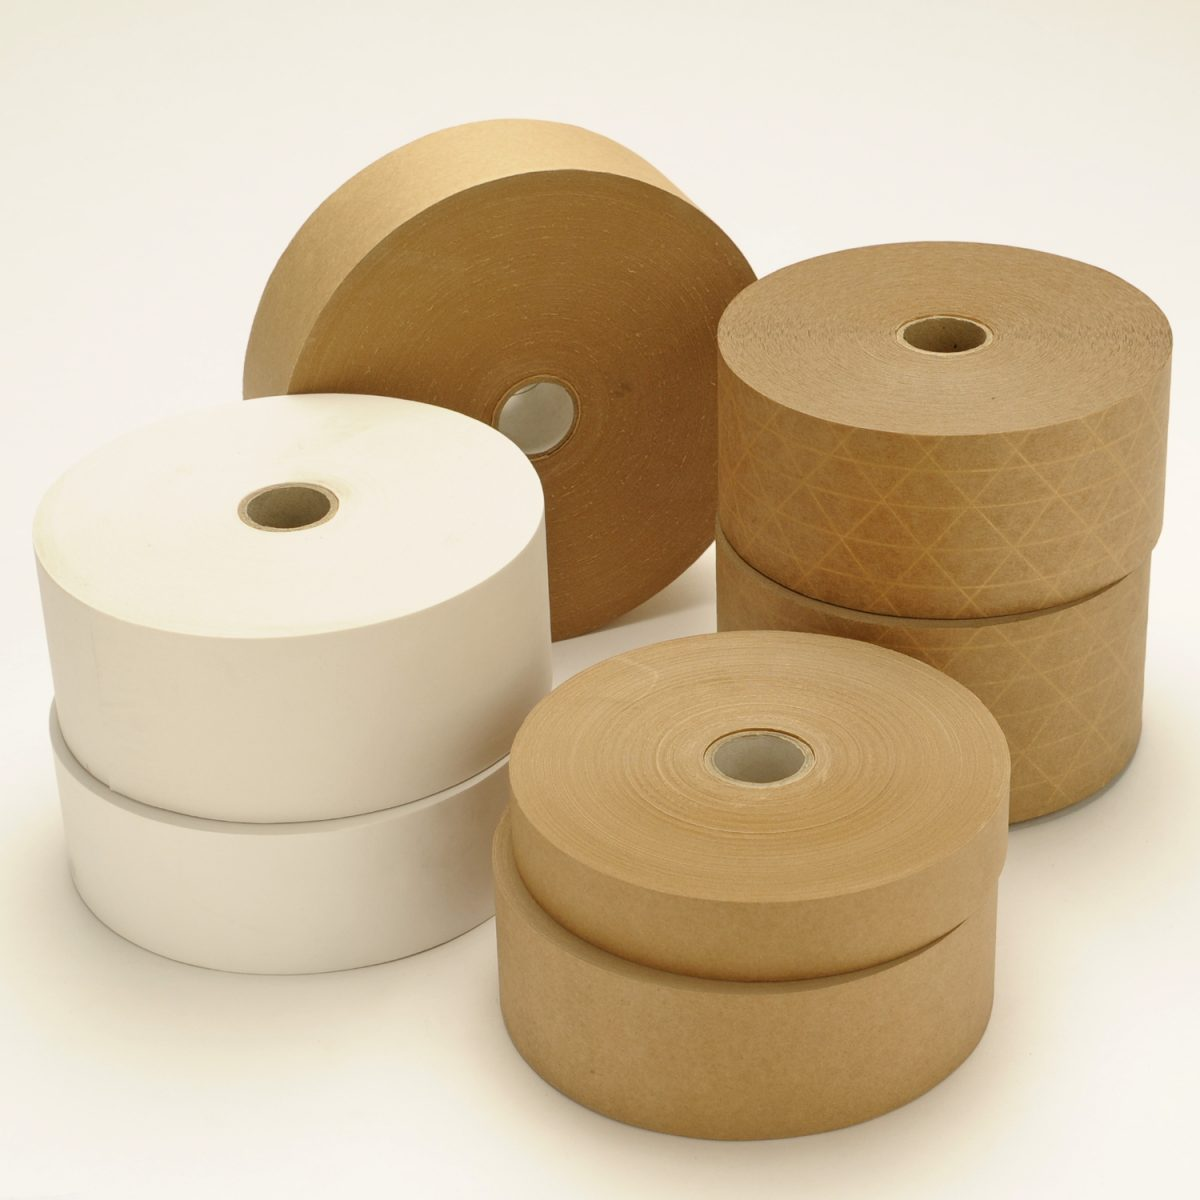 What is the Most Eco-friendly Packing Tape?